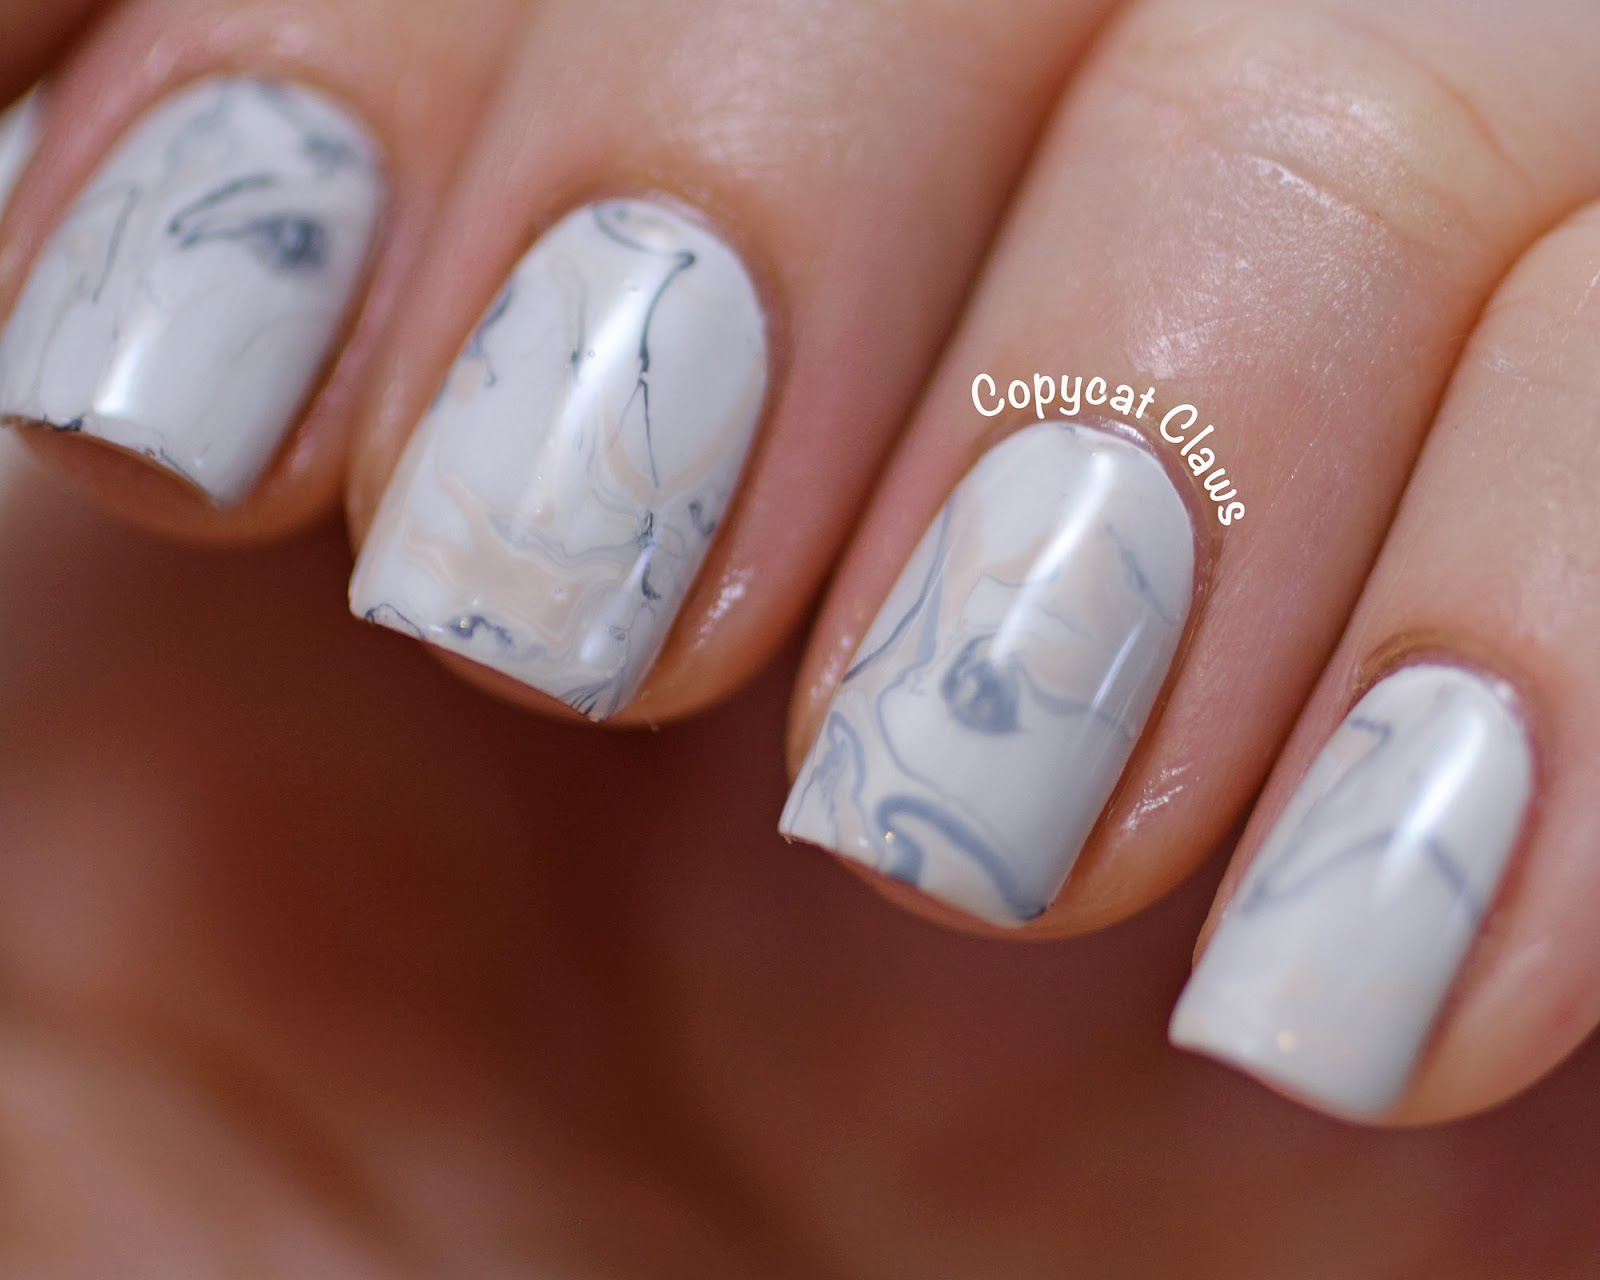 Copycat Claws: Marble Nail Art